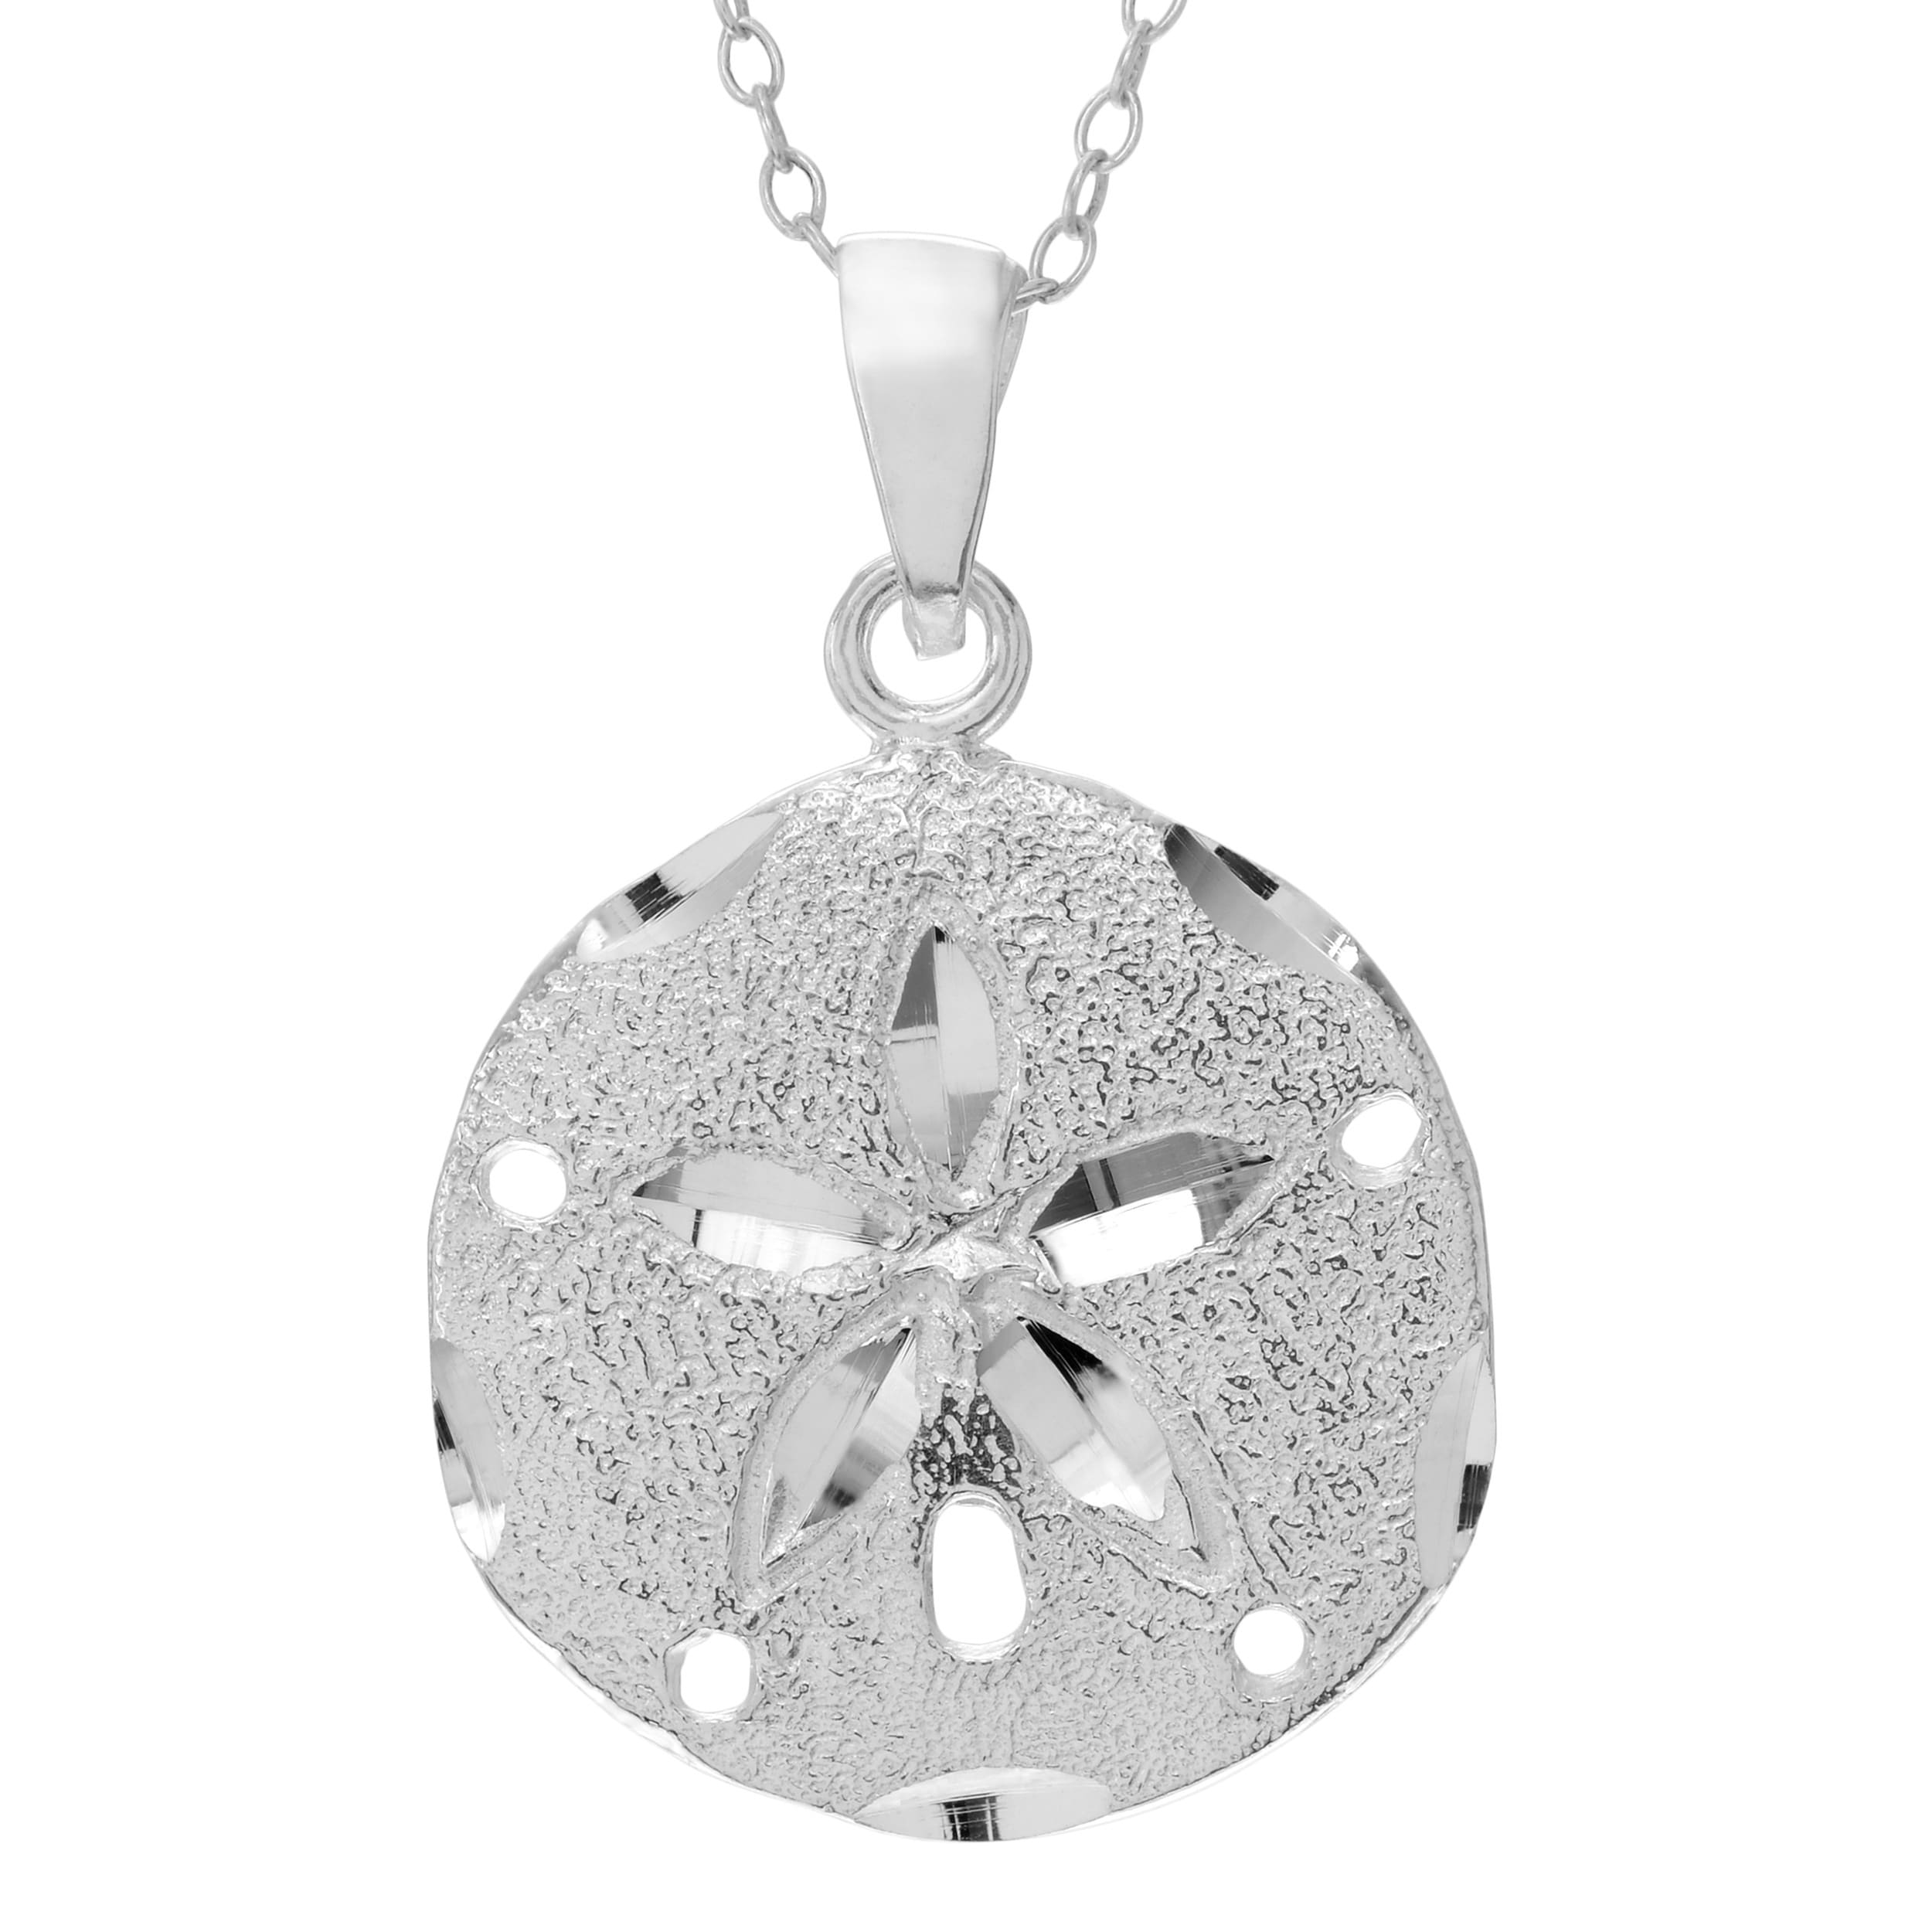 Sterling silver sand dollar pendant necklace free shipping on sterling silver sand dollar pendant necklace free shipping on orders over 45 overstock 11166253 aloadofball Images